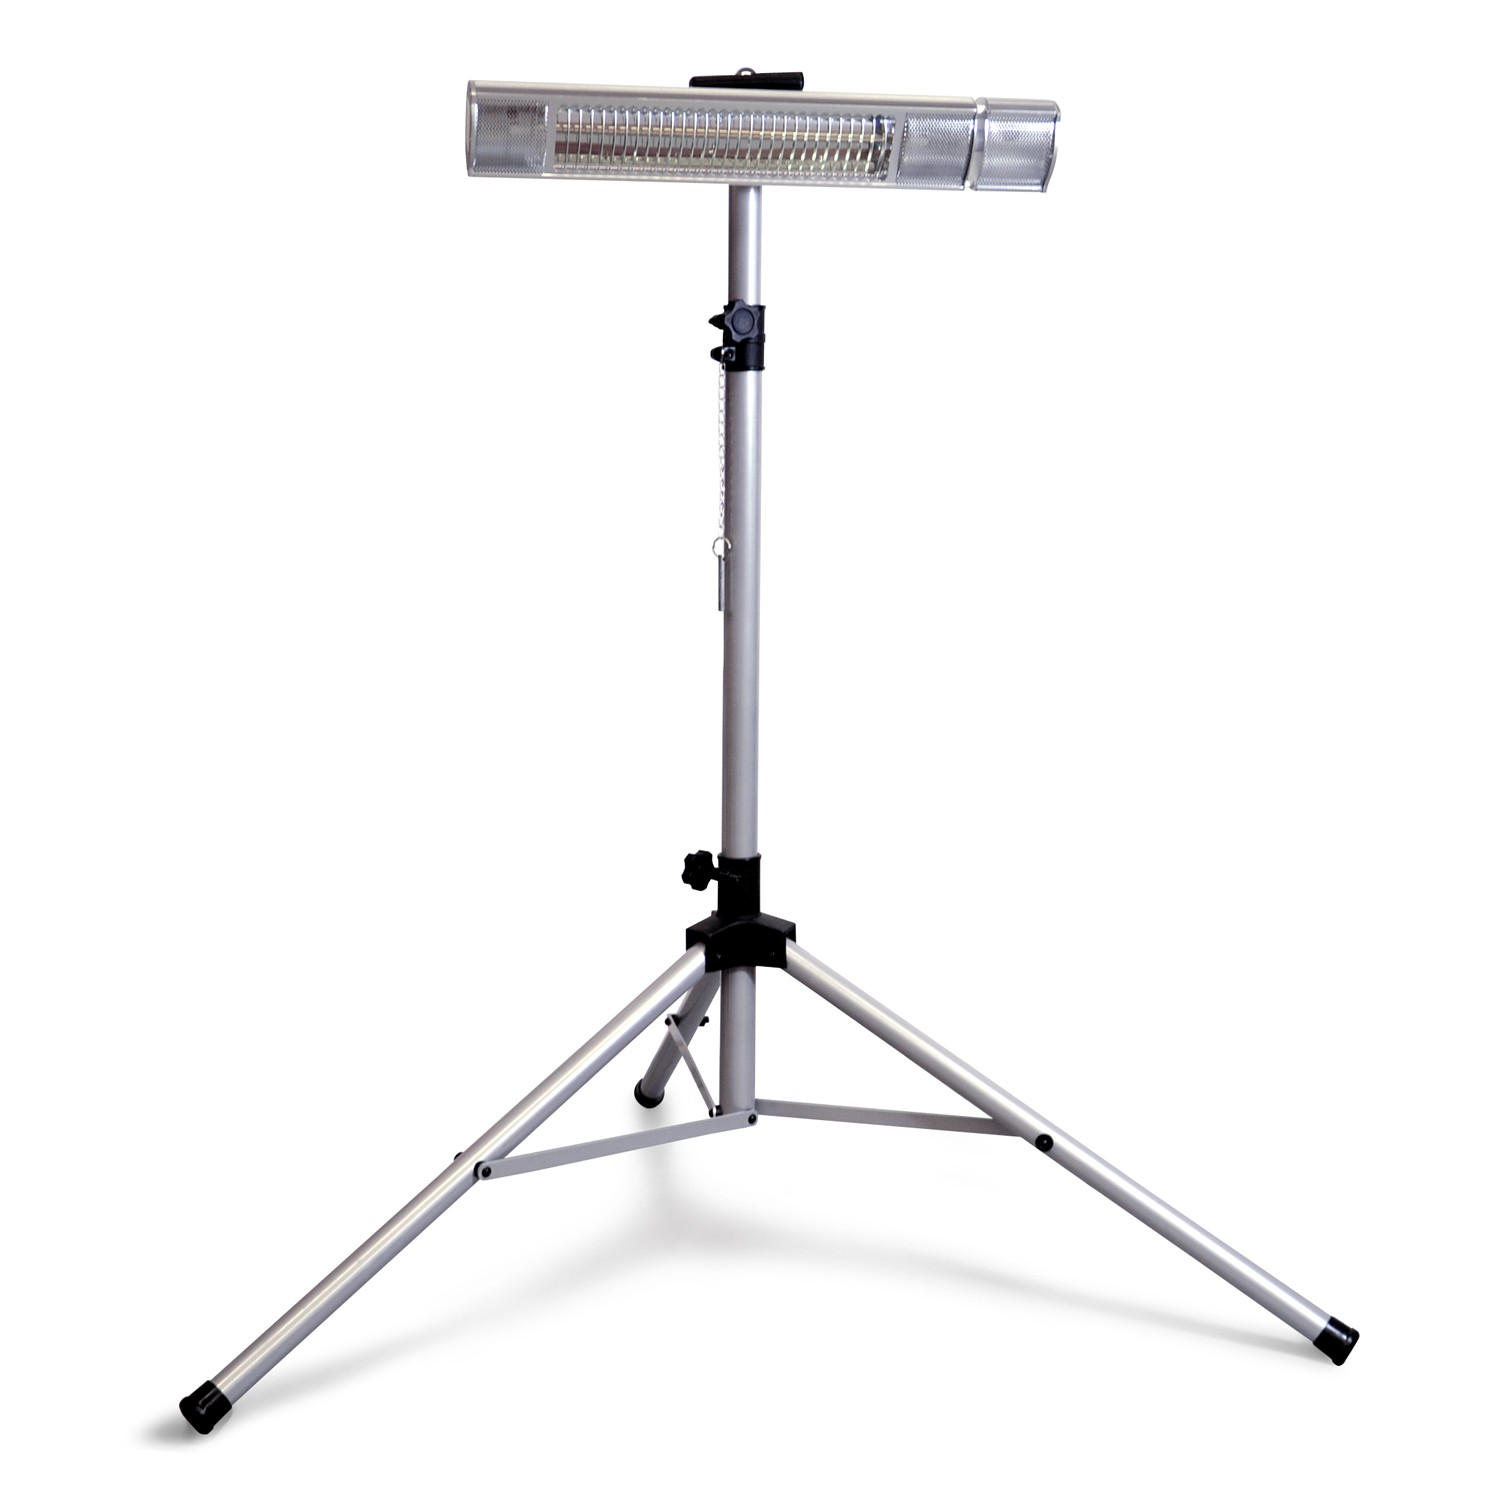 tripod spezial standfu f r heizstrahler infrarotstrahler. Black Bedroom Furniture Sets. Home Design Ideas